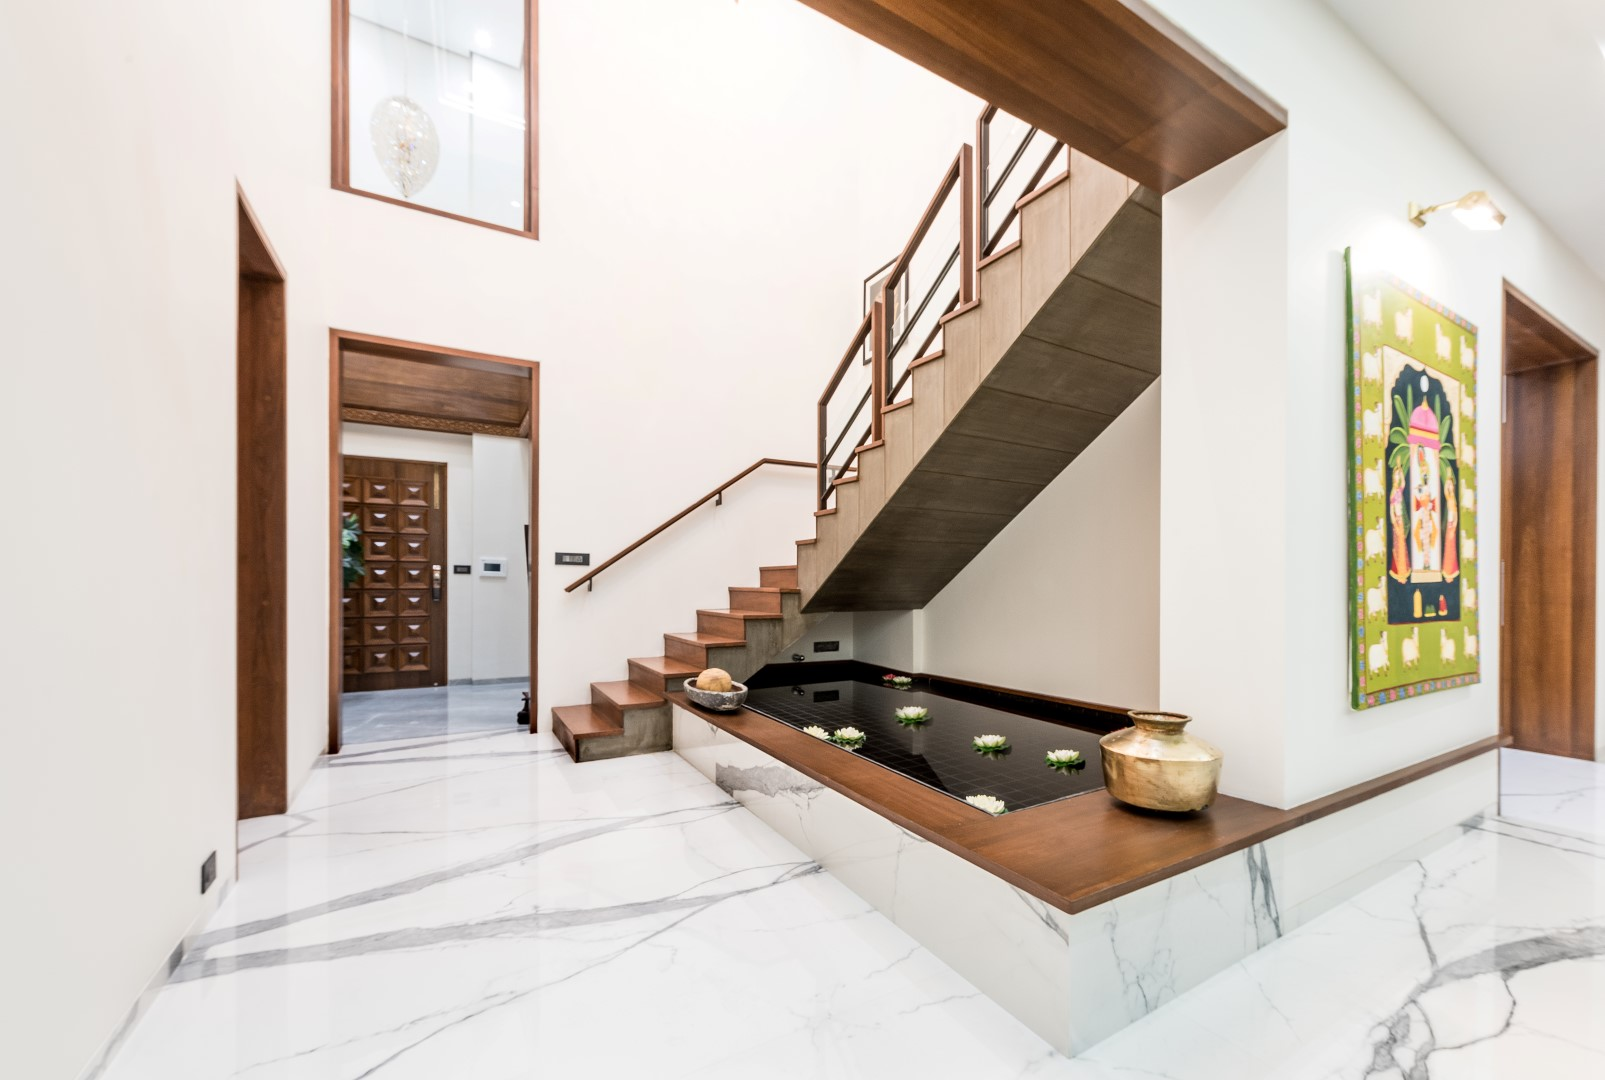 luxurious penthouse interior design is a showcase of the bond in combination with the sleek glass wood and m s railing the exposed concrete staircase glides above the water body which with a peripheral seat around